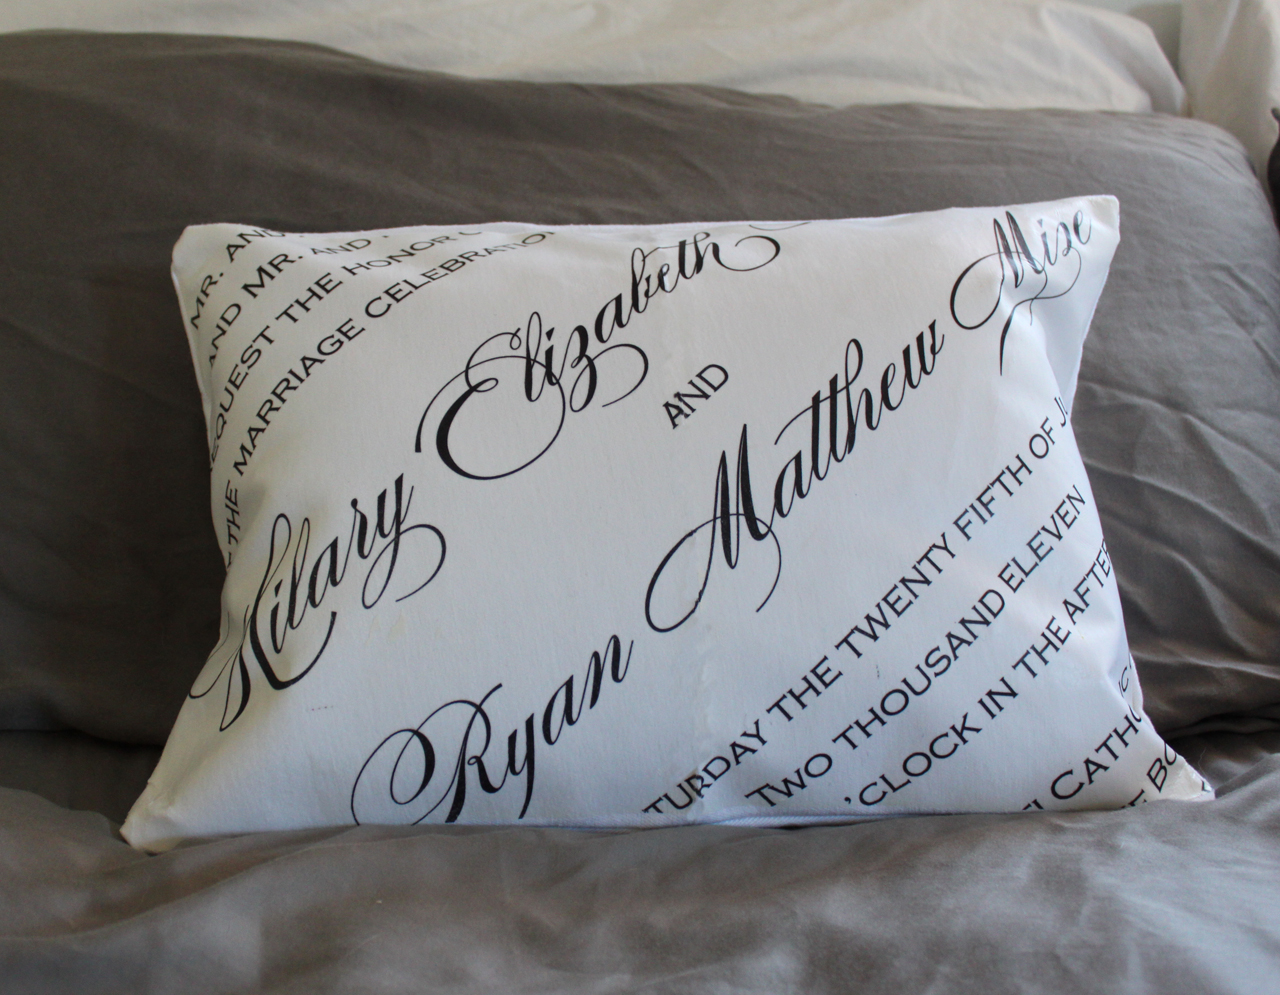 231 Designs: DIY CUSTOM PILLOW COVERS WITH INVITATION ART FOR A ...